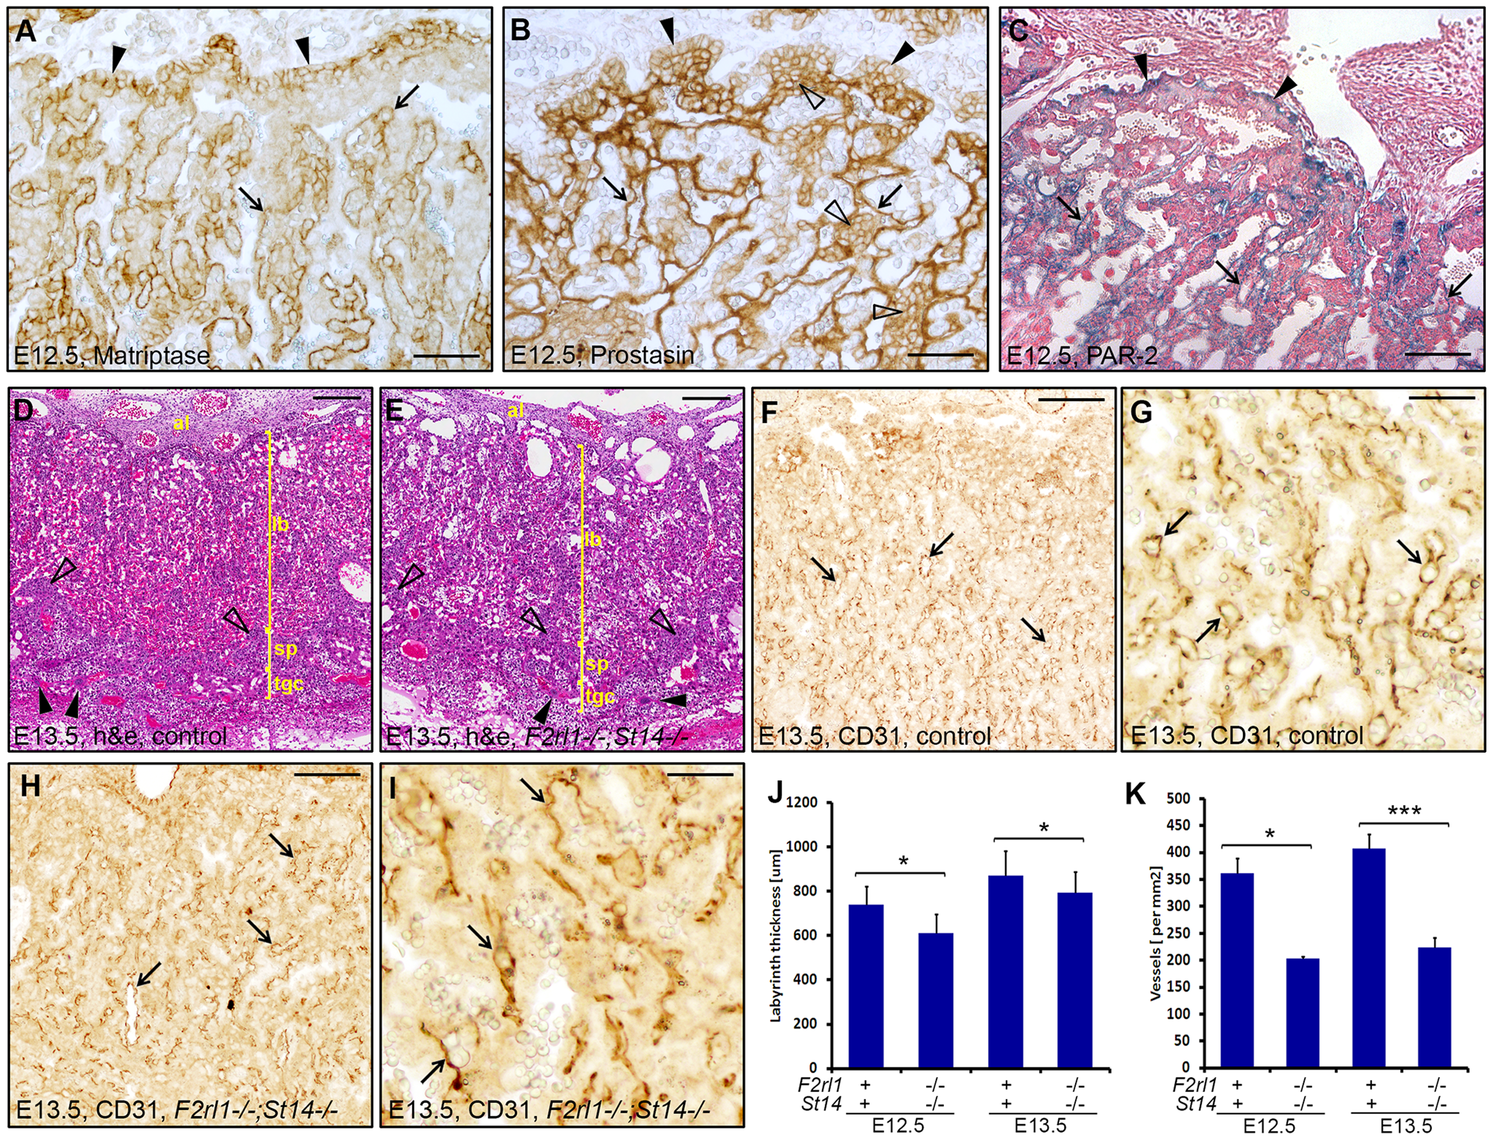 A combined loss of PAR-2 and matriptase leads to underdevelopment of placental labyrinth.